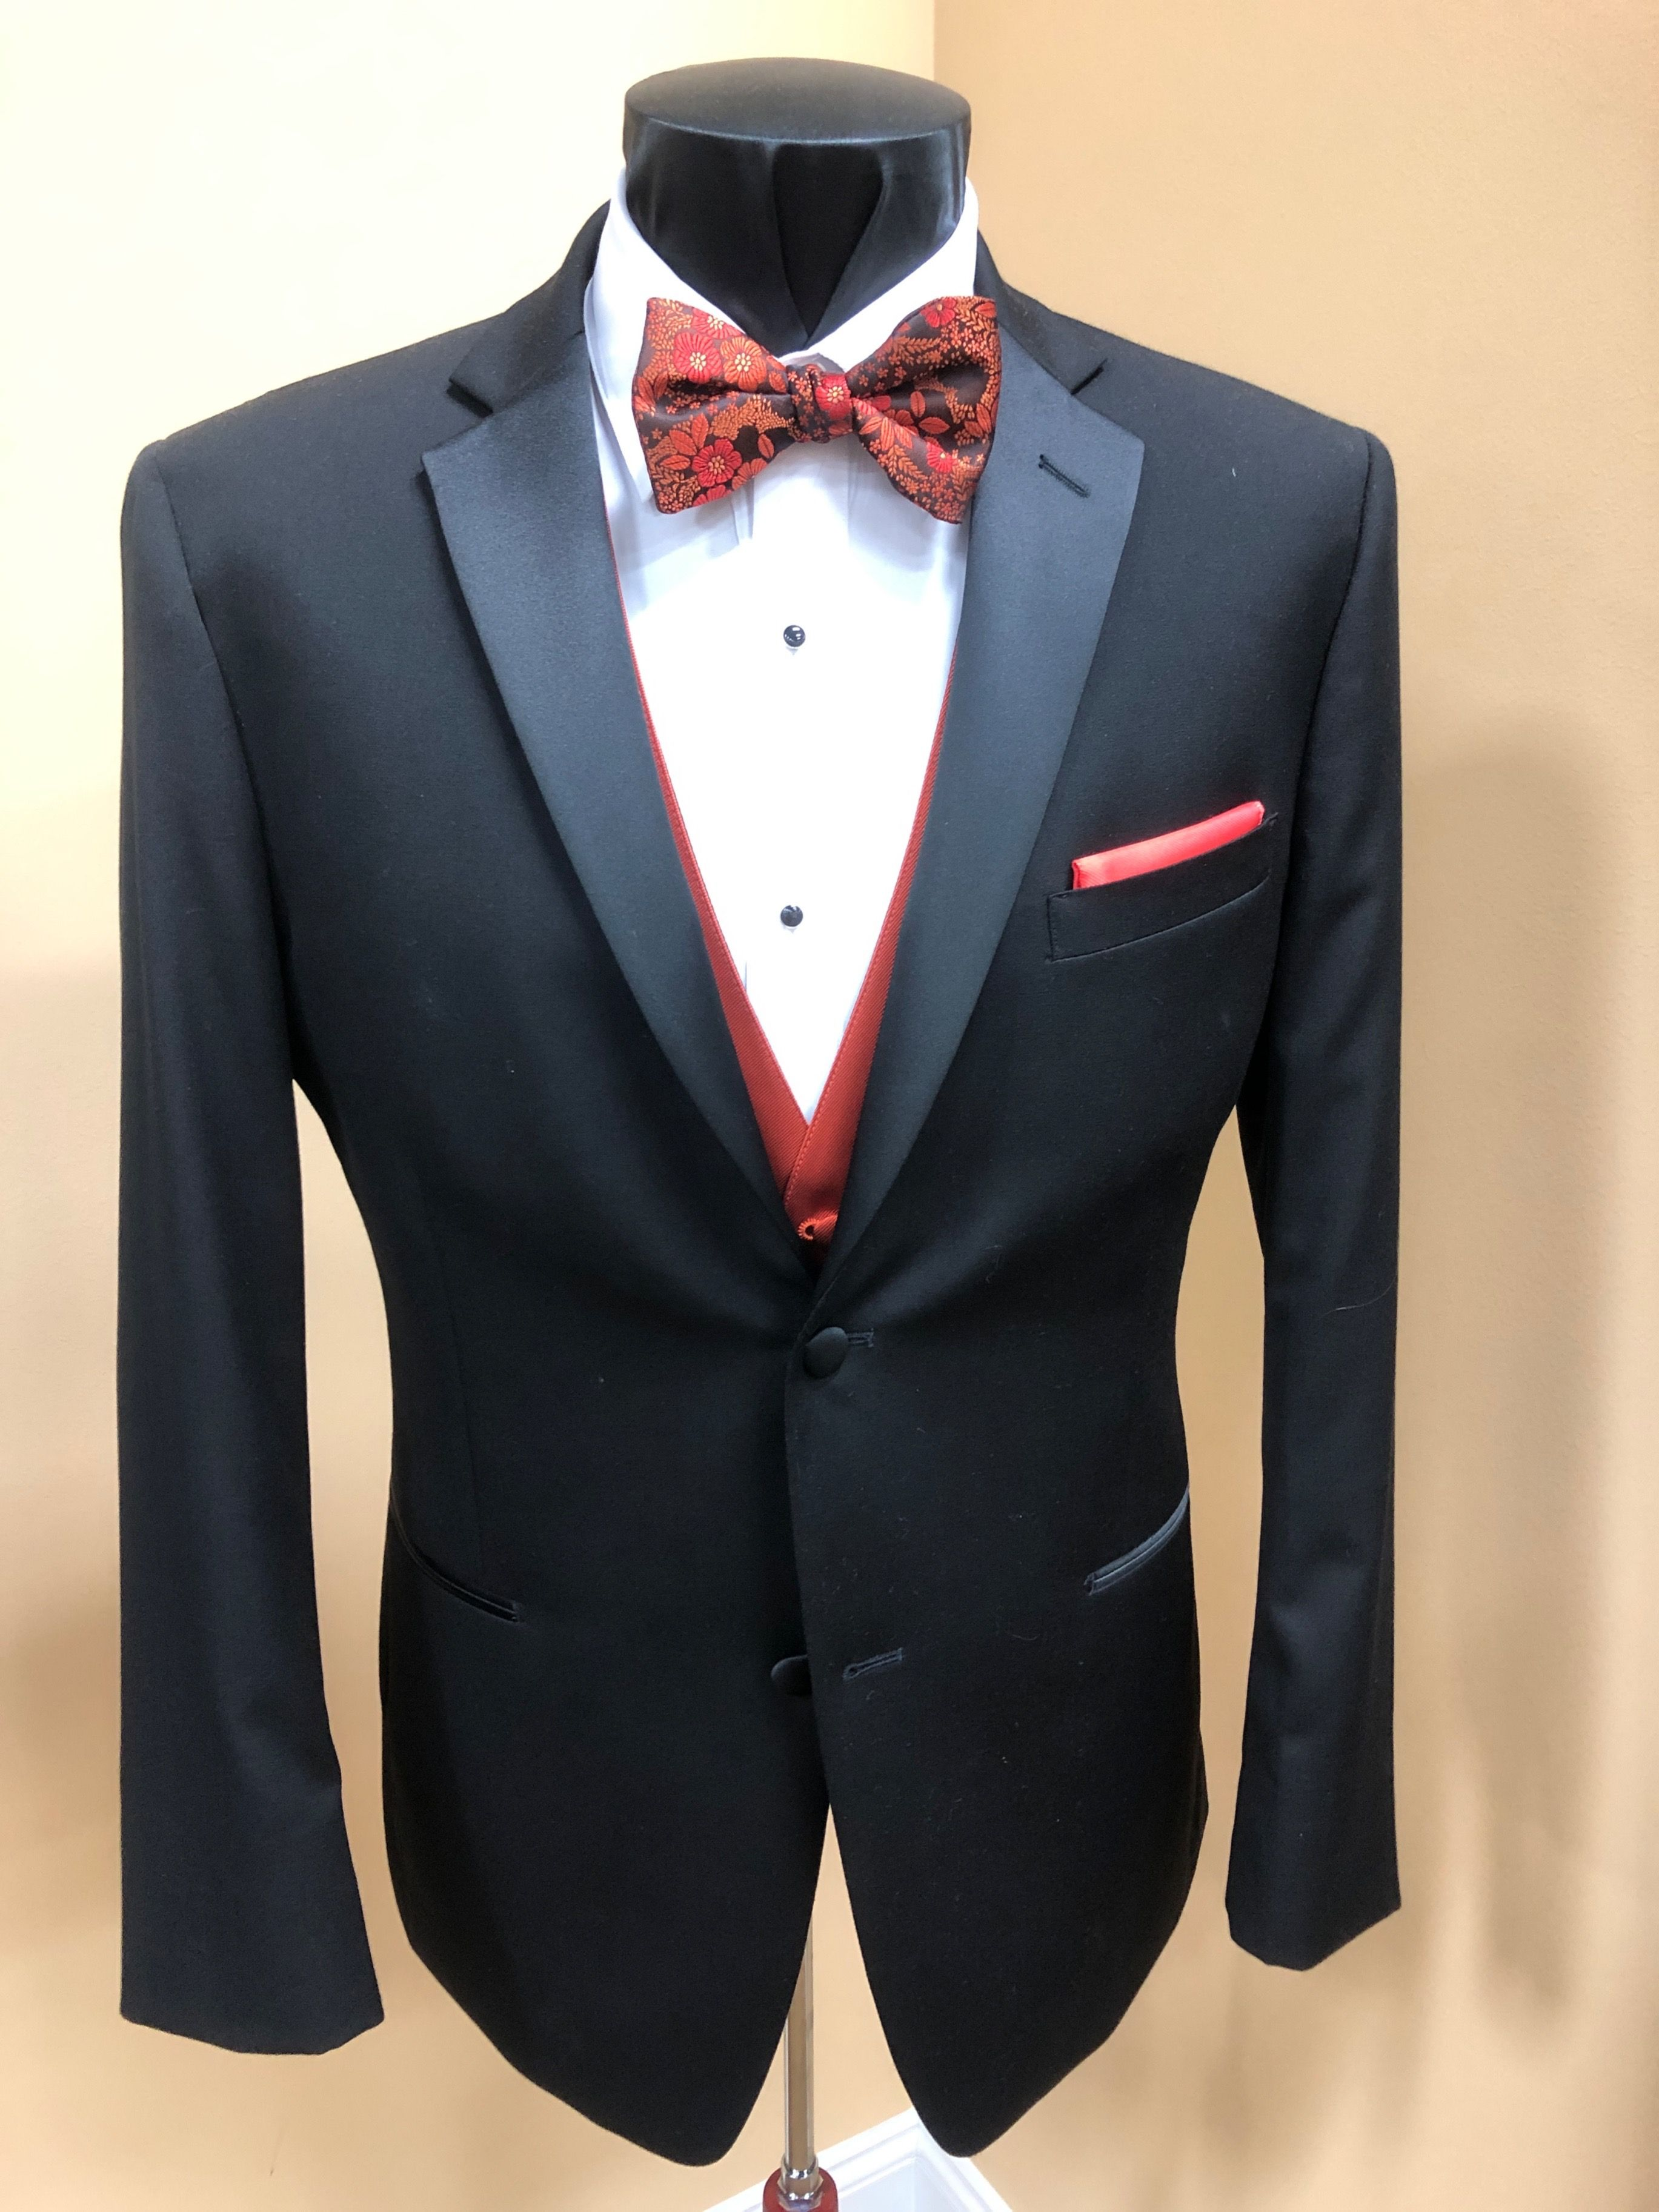 We have Halloween colors for your tuxedo rental with